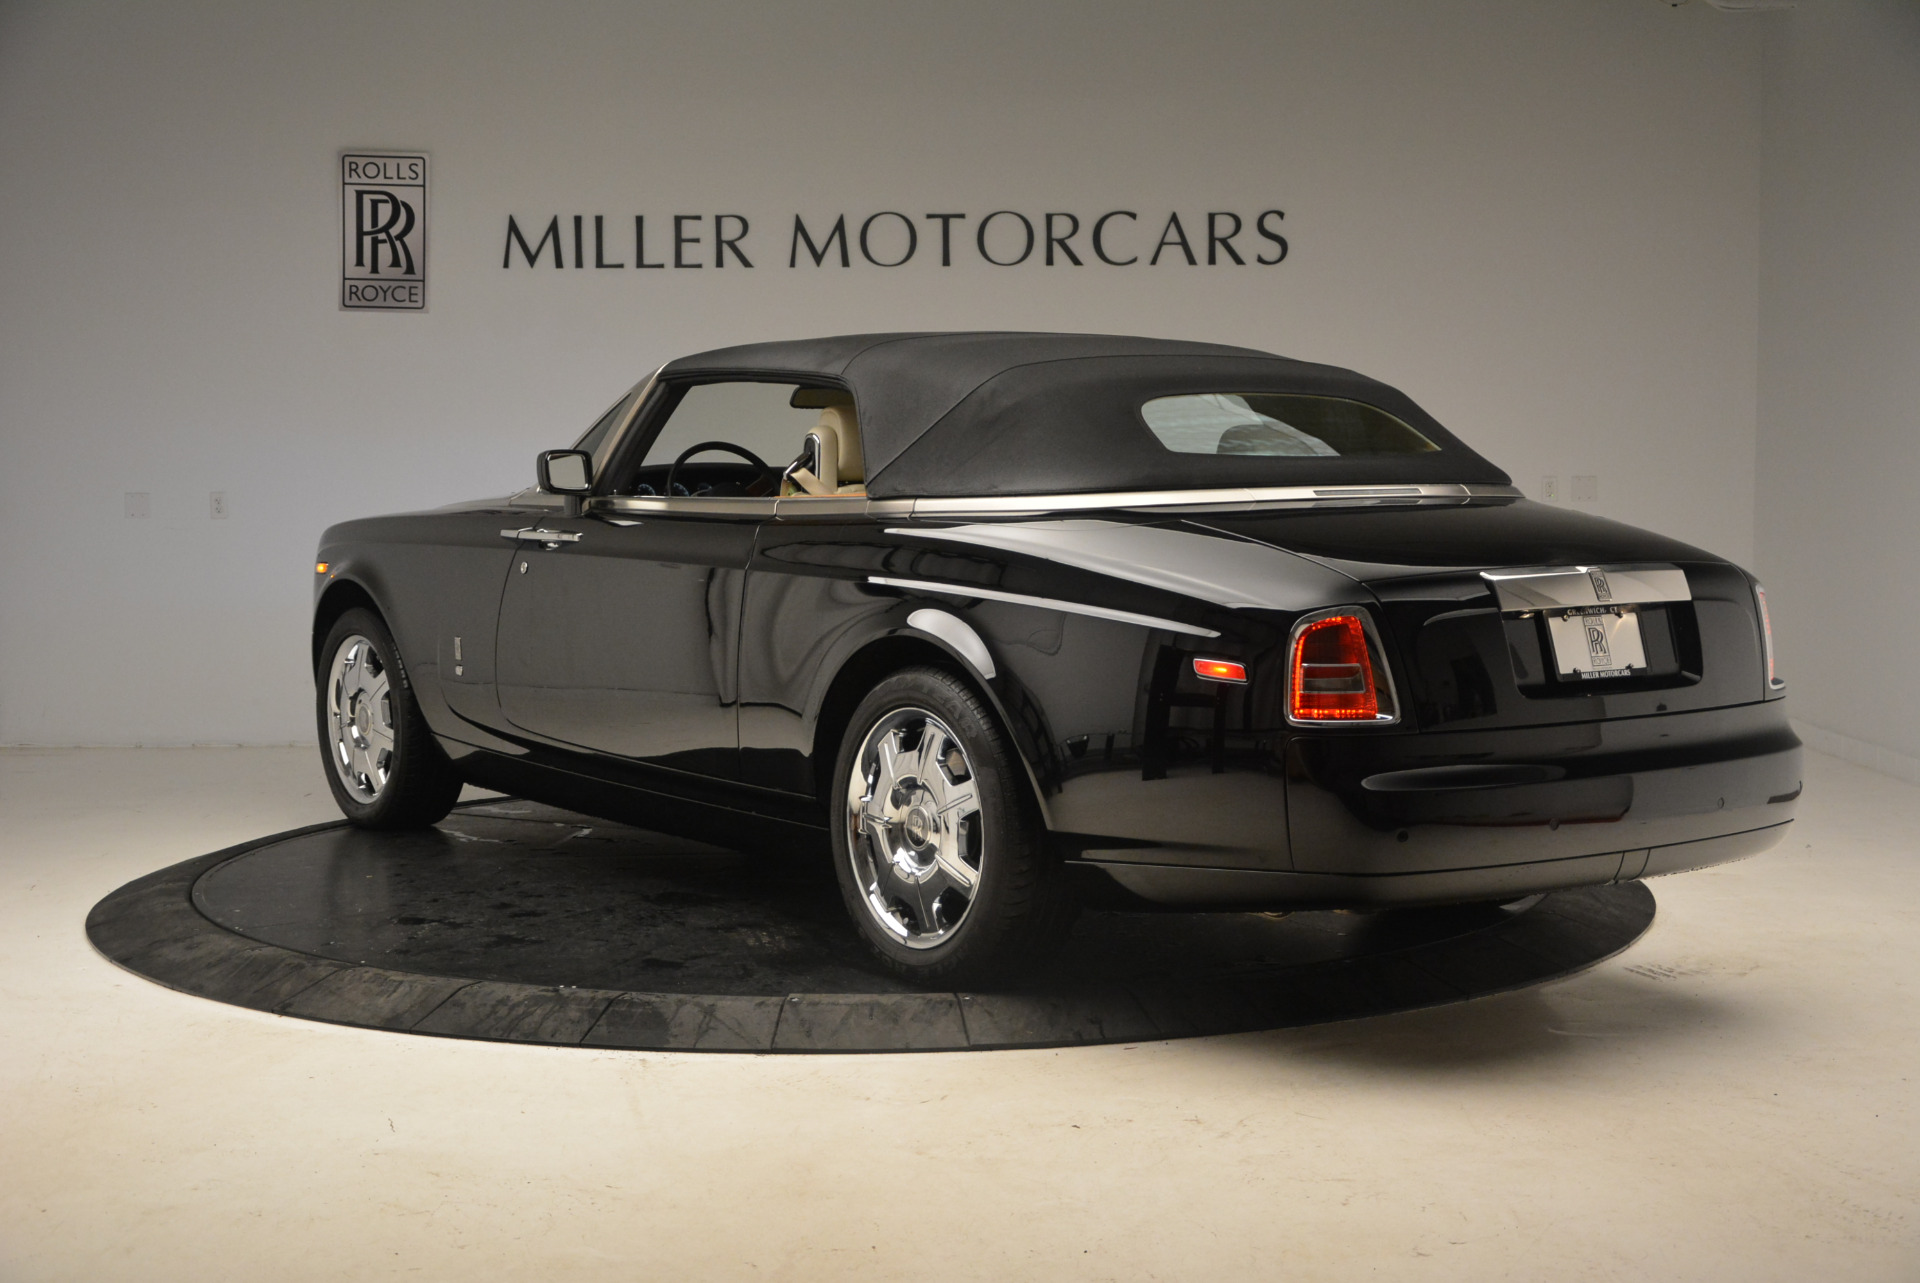 Used 2009 Rolls-Royce Phantom Drophead Coupe  For Sale In Westport, CT 1792_p17